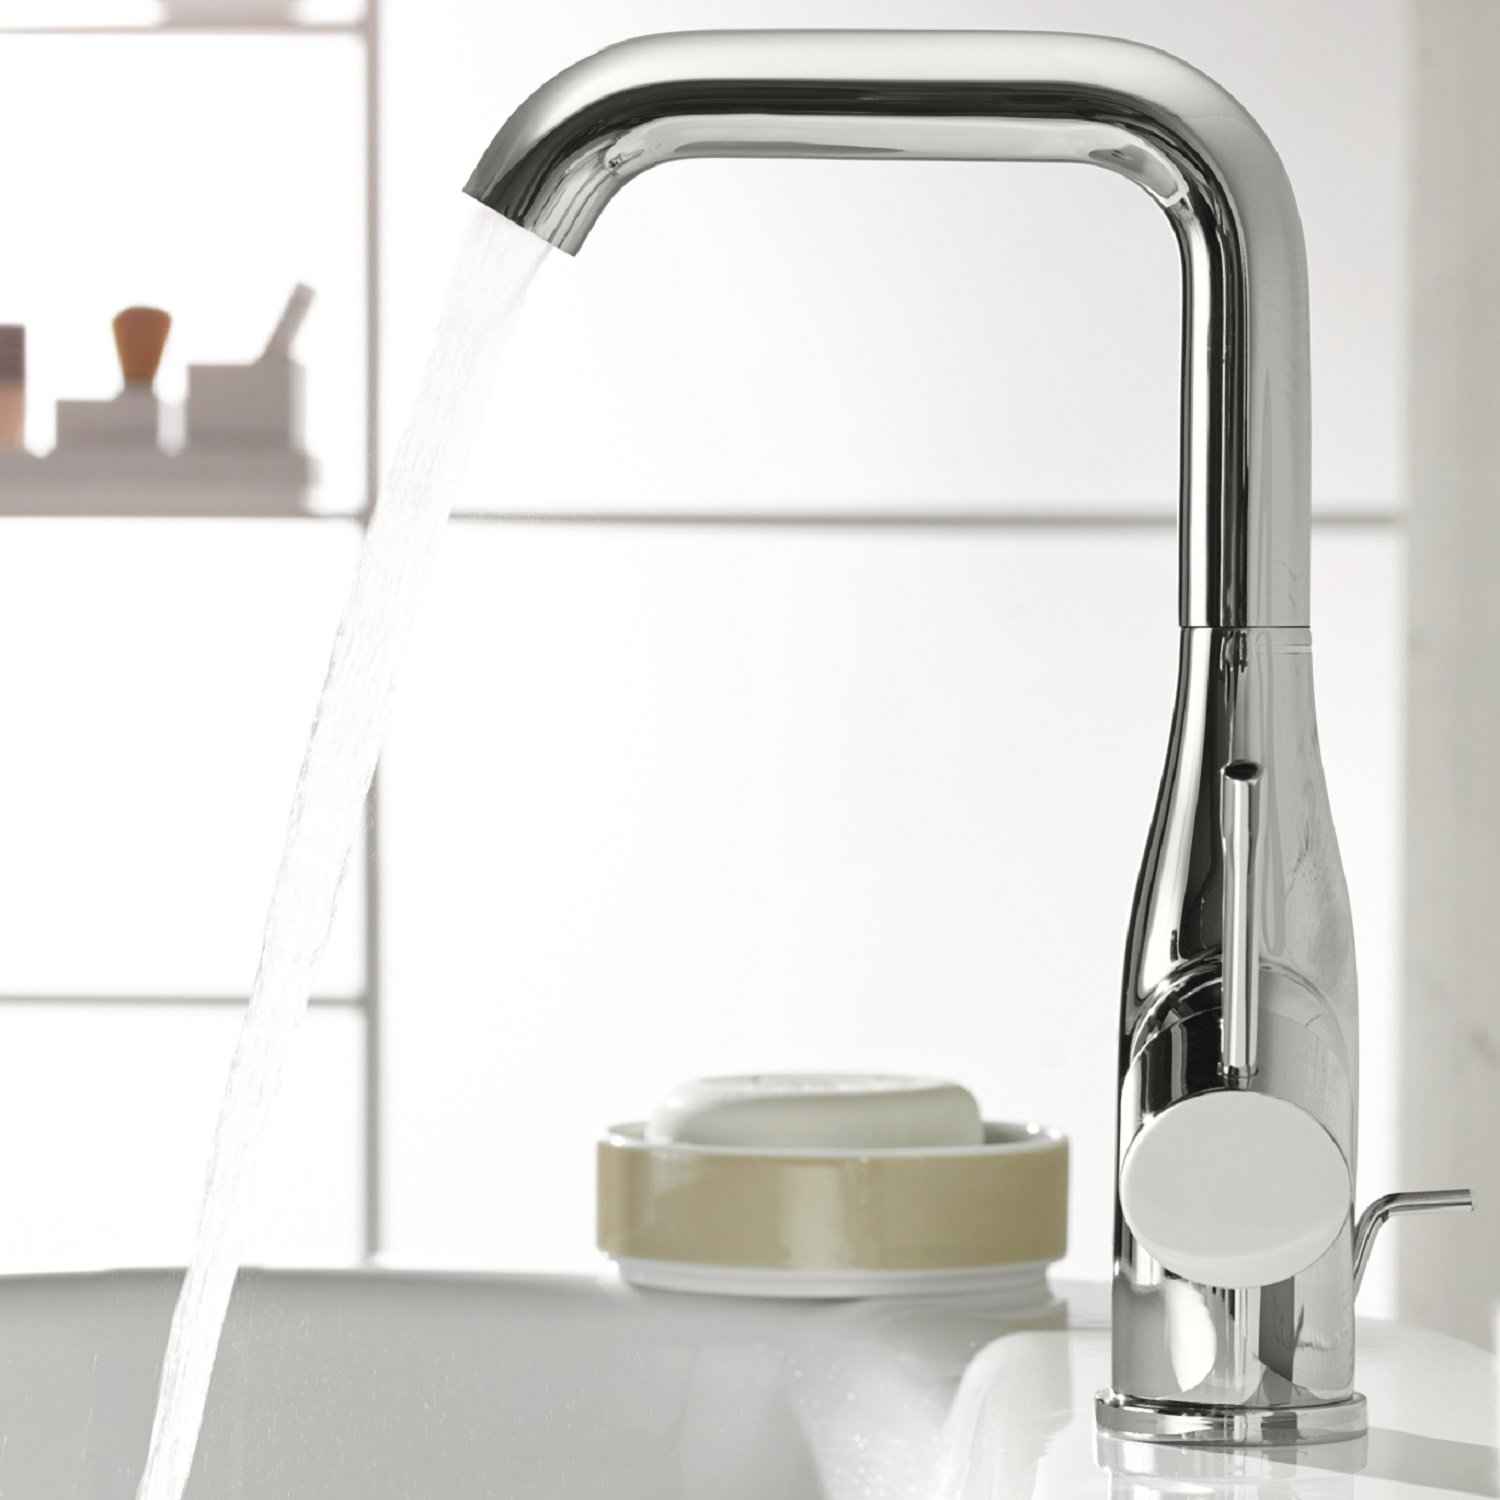 Amazing GROHE Essence Single Lever Basin Tap Pop Up Waste, High Spout One Handle  Mixer, With Plug, Swivel Spout, Water Saving, Chrome, 32628001:  Amazon.co.uk: DIY U0026 ...